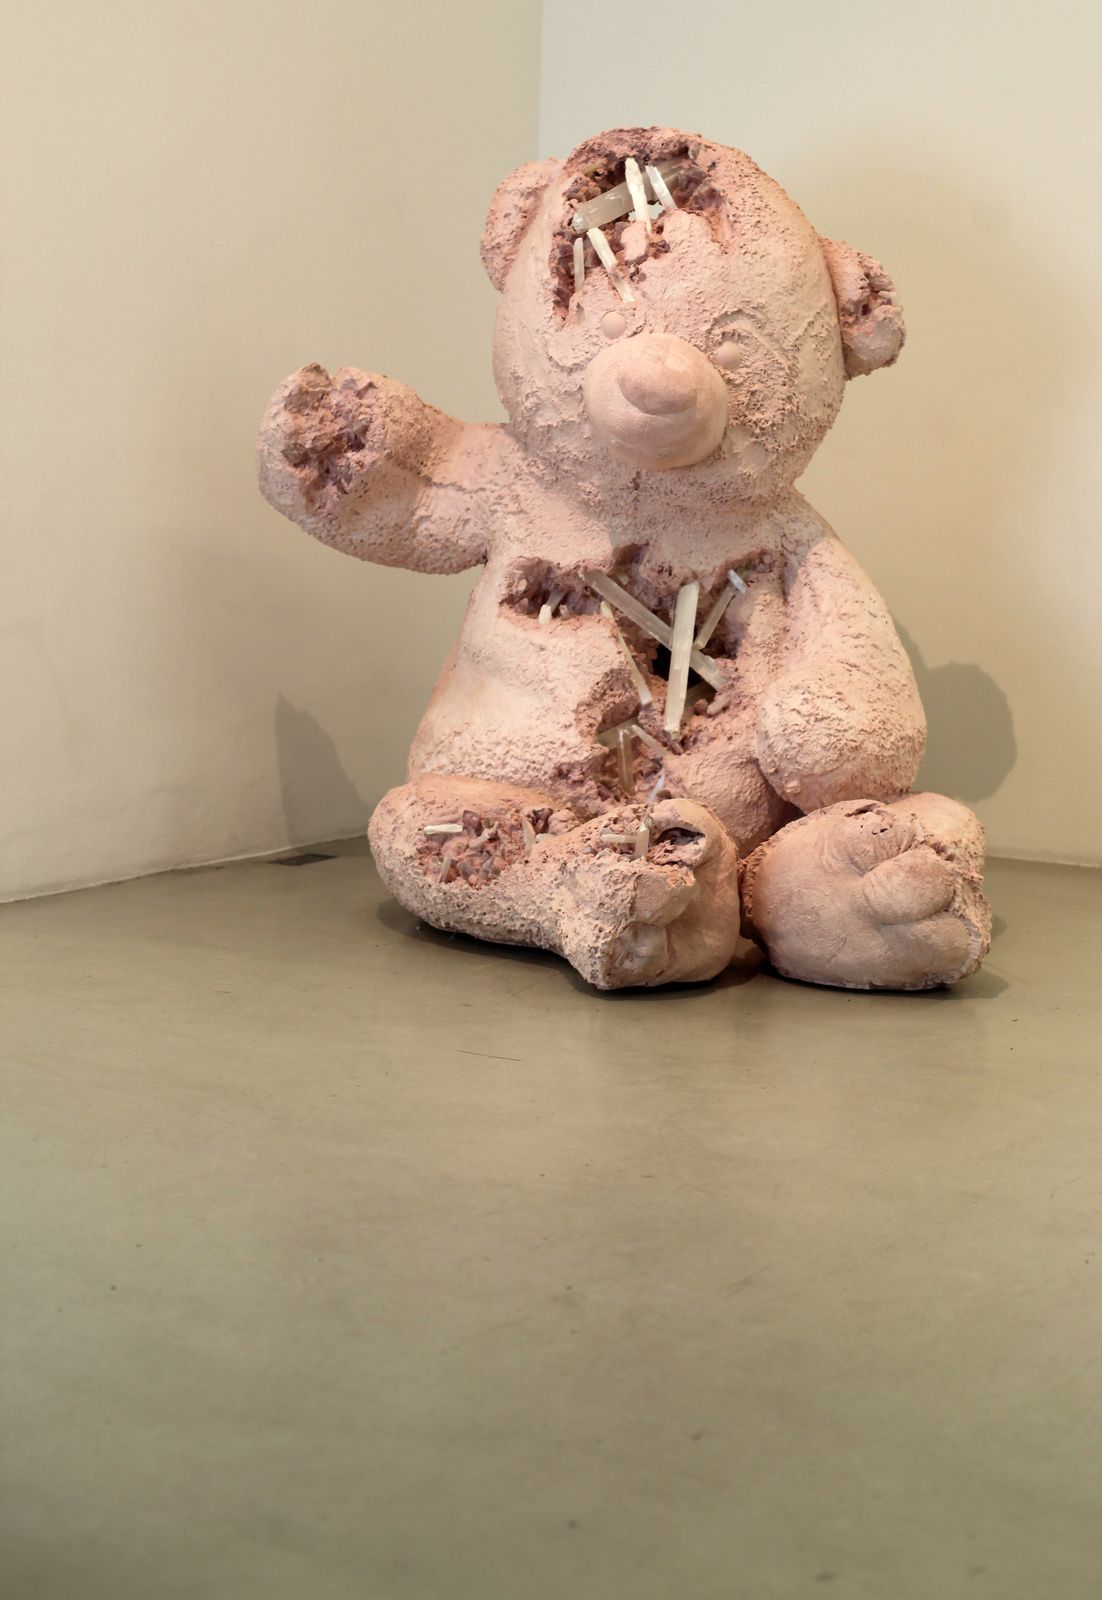 """Selenite and Rose Quartz Eroded Bear"", 2017 de Daniel ARSHAM- Courtesy Galerie PERROTIN © Photo Éric Simon"